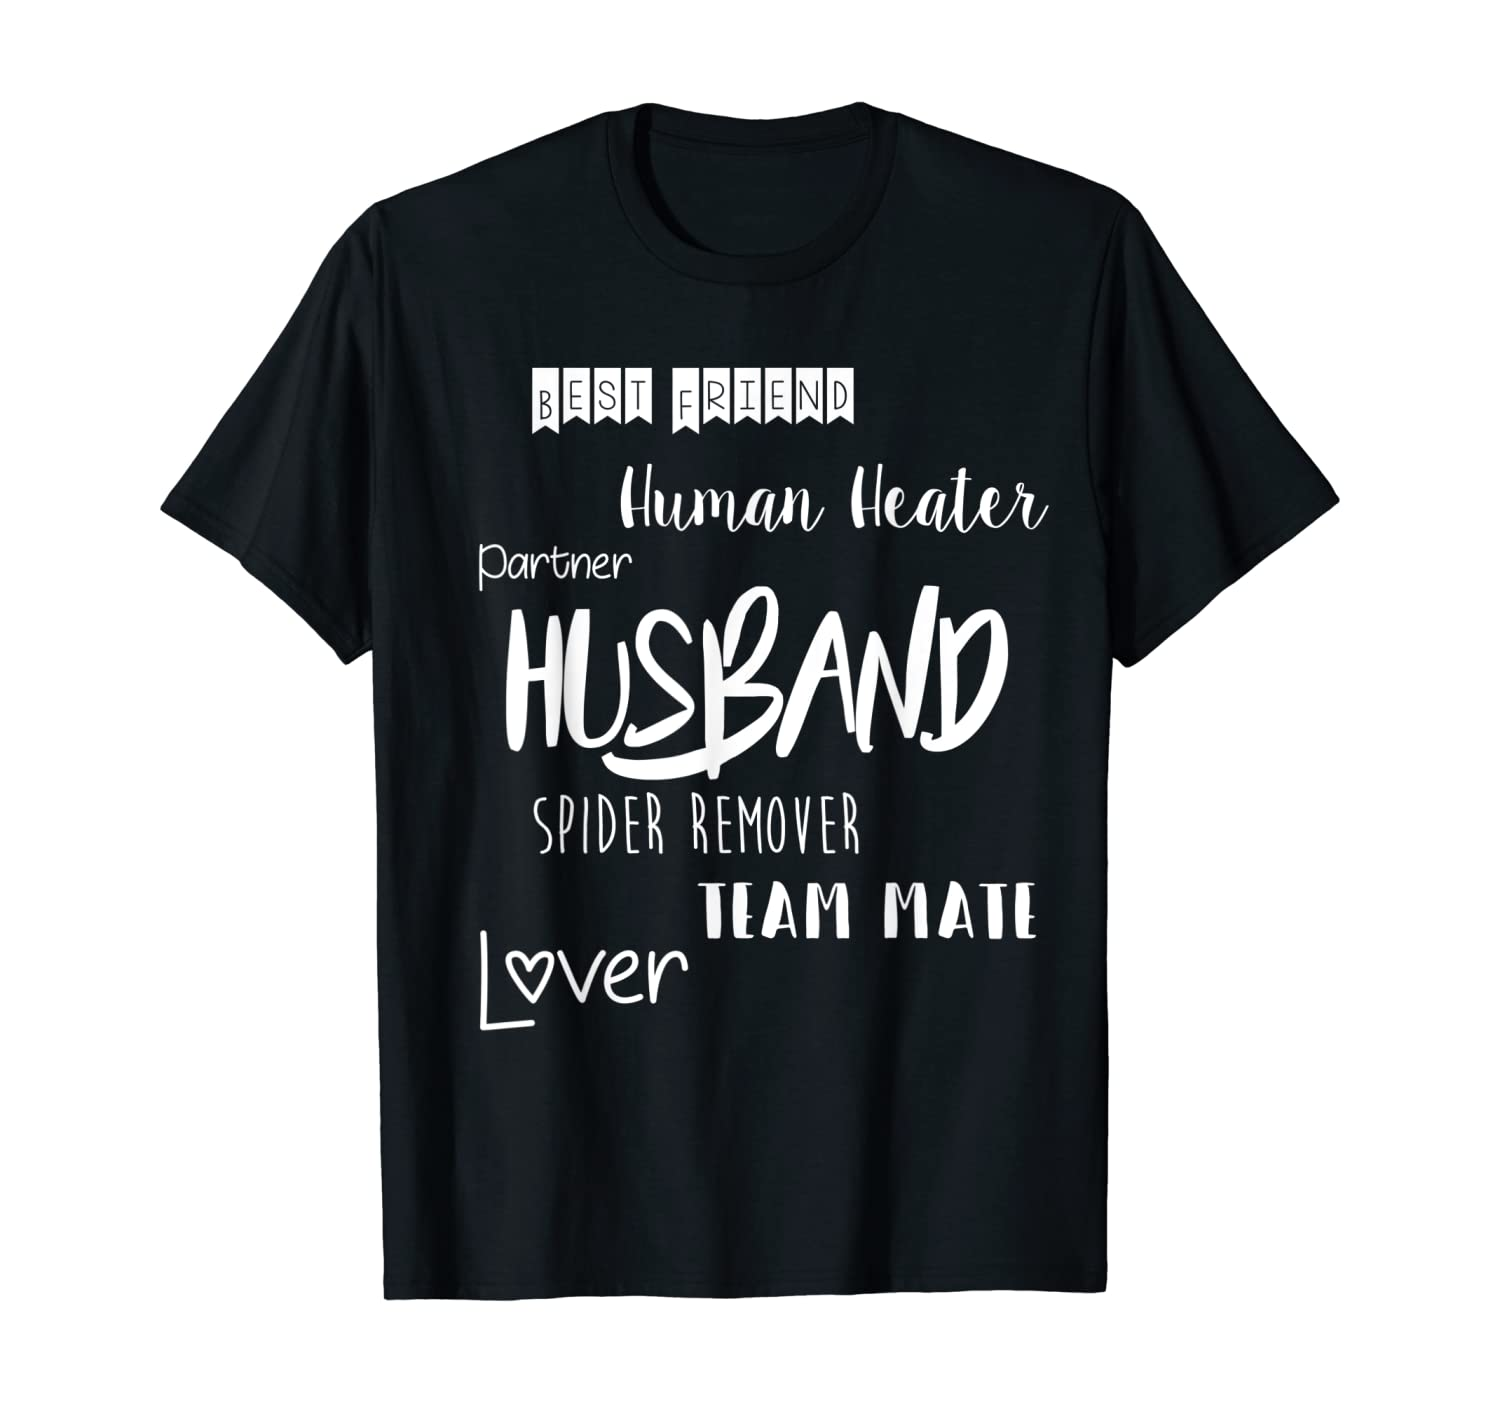 Funny Husband Hubby Gift Shirt With Saying Best Friend Lover T-Shirt